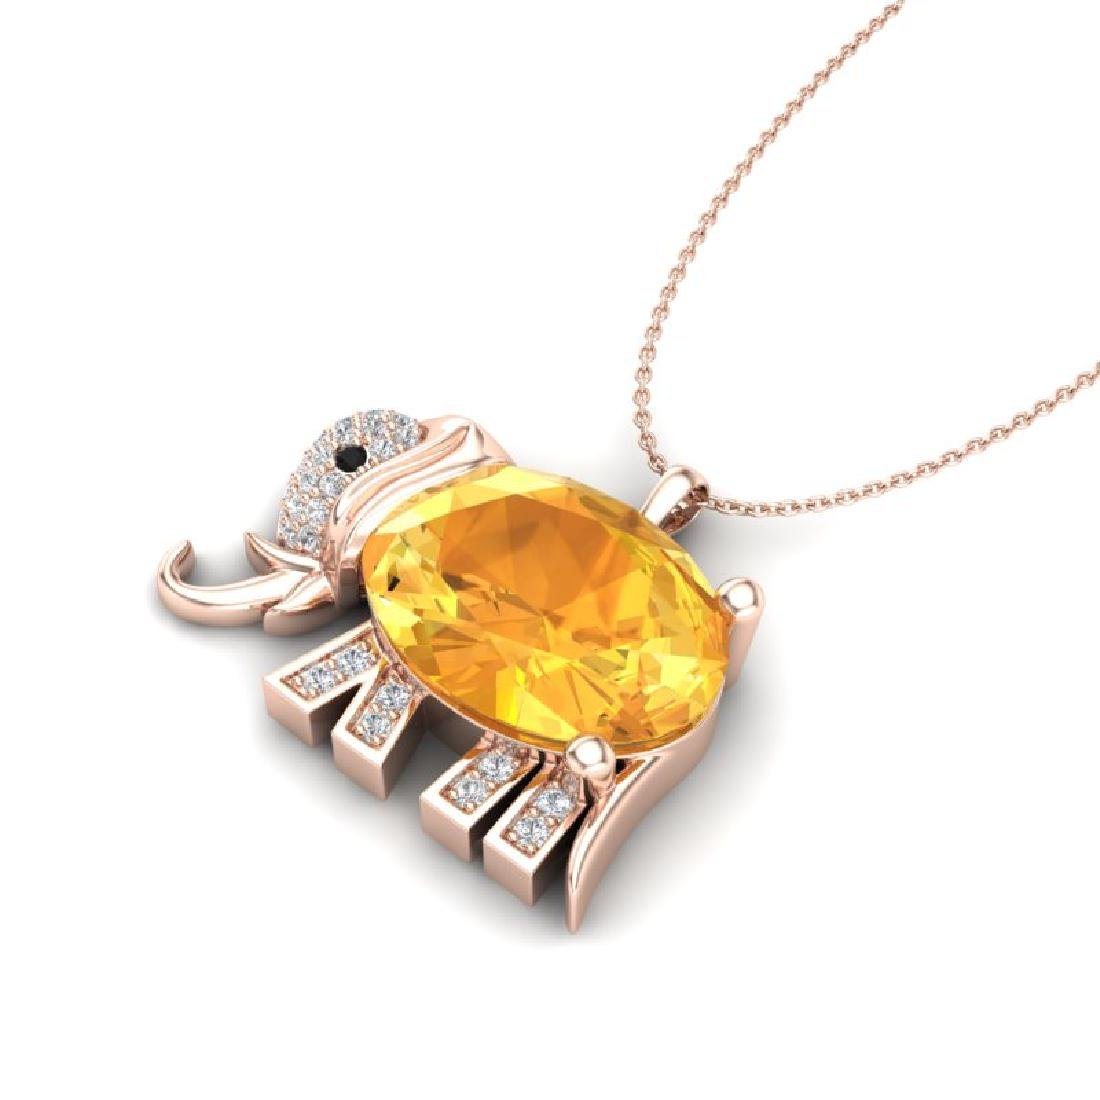 8 CTW Citrine & Micro Pave Huggable Elephant VS/SI